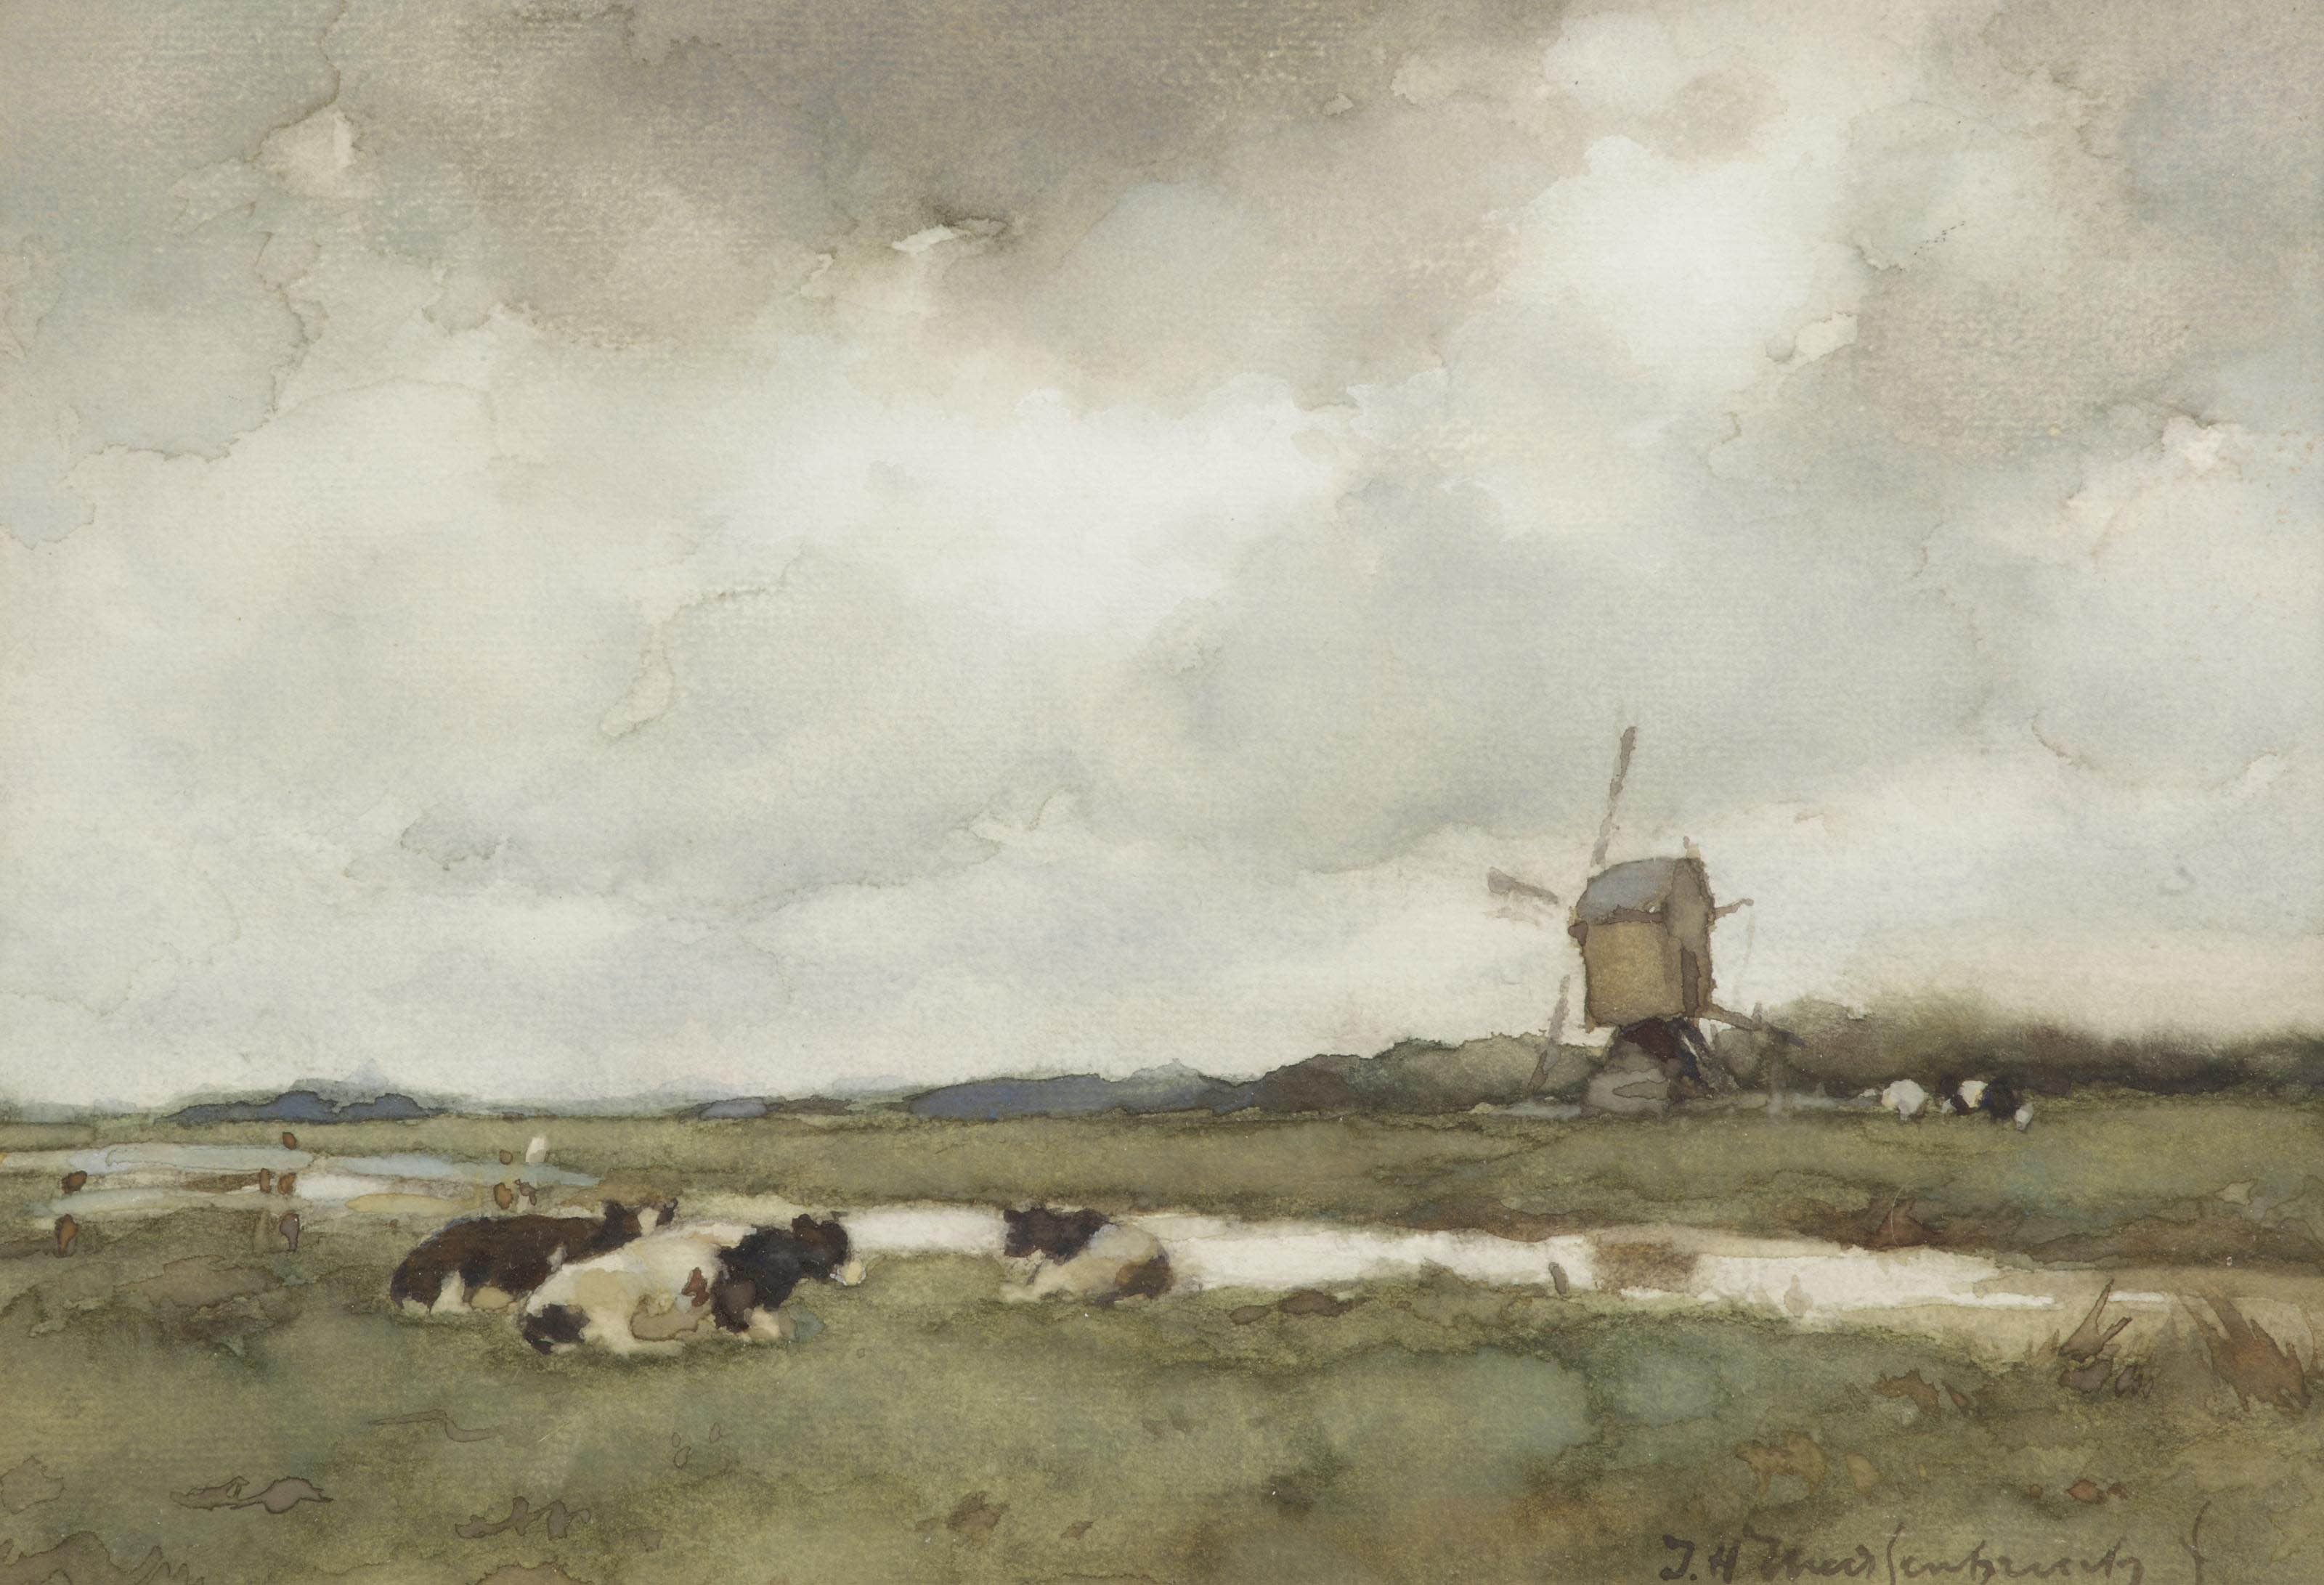 Cows in a Dutch landscape, a wind mill beyond